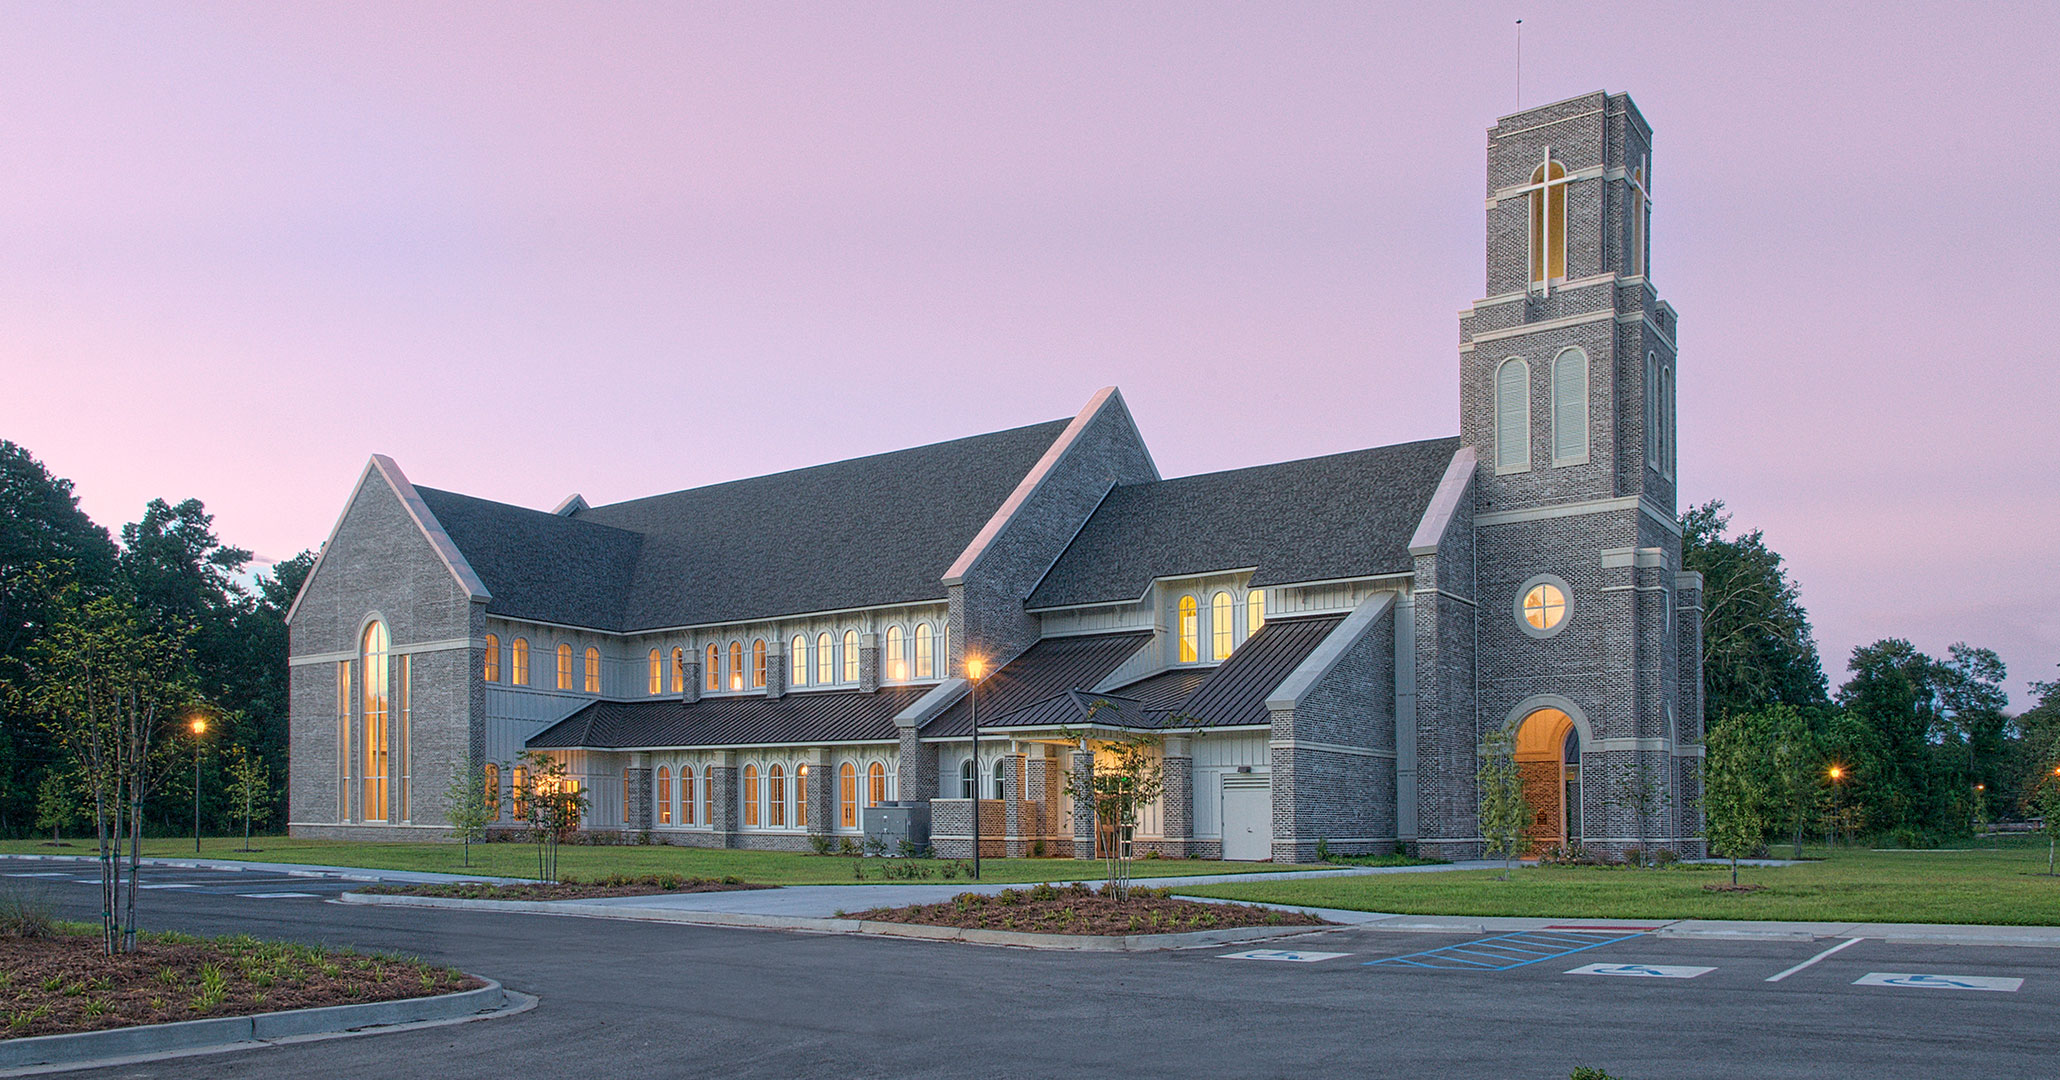 Boudreaux architects worked with St. Anne in Richmond Hill, GA to expand their current church footprint.